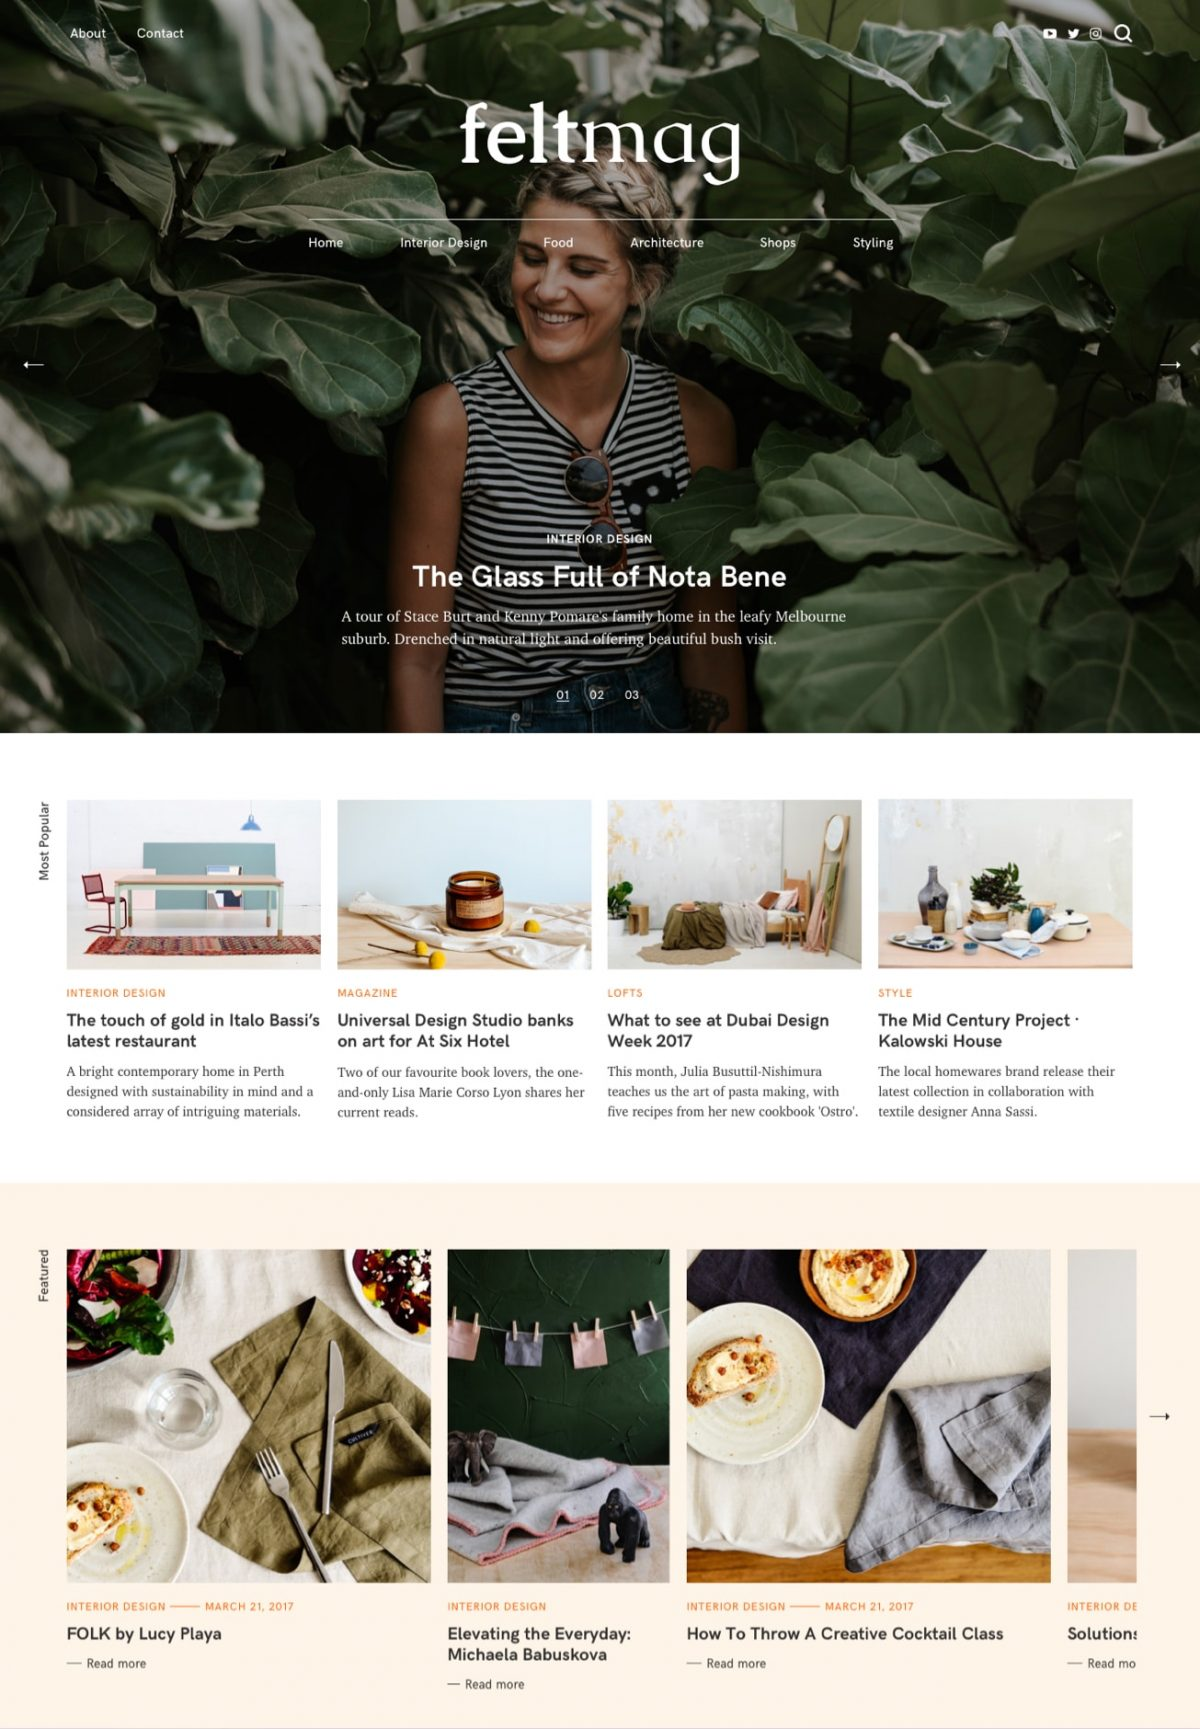 Felt Magazine WordPress Theme Desktop View